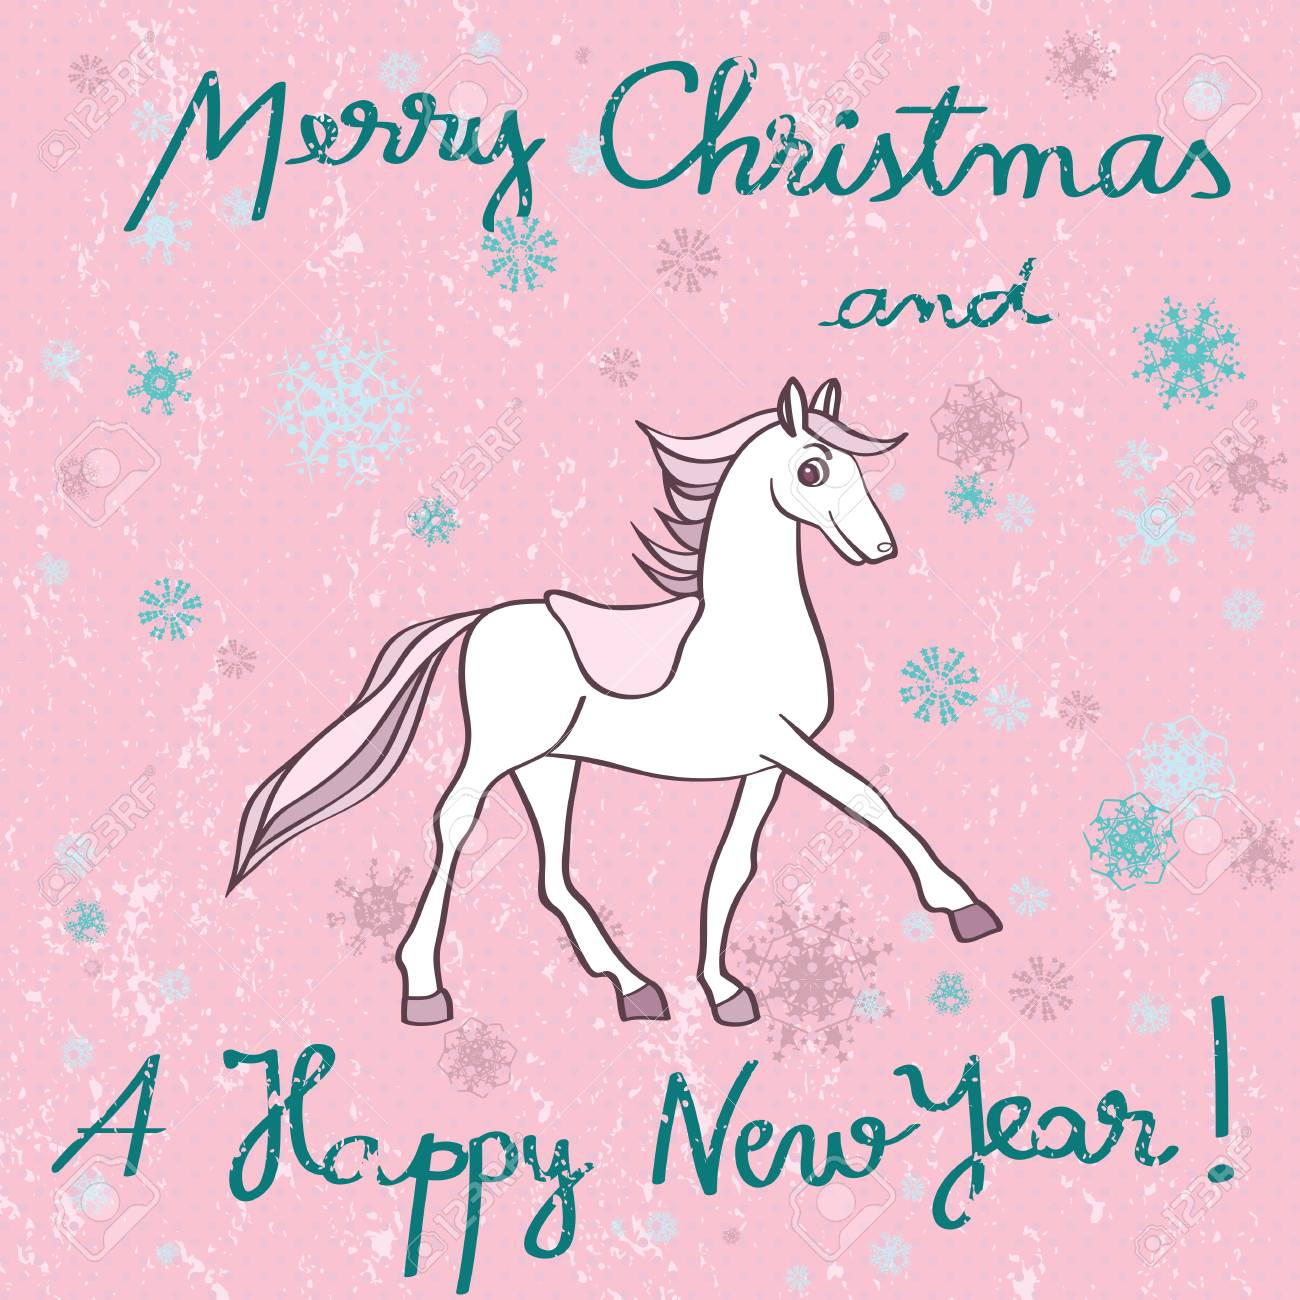 Christmas Horse Cartoon.Christmas And New Year S Greetings Card With Horse Cartoon Over